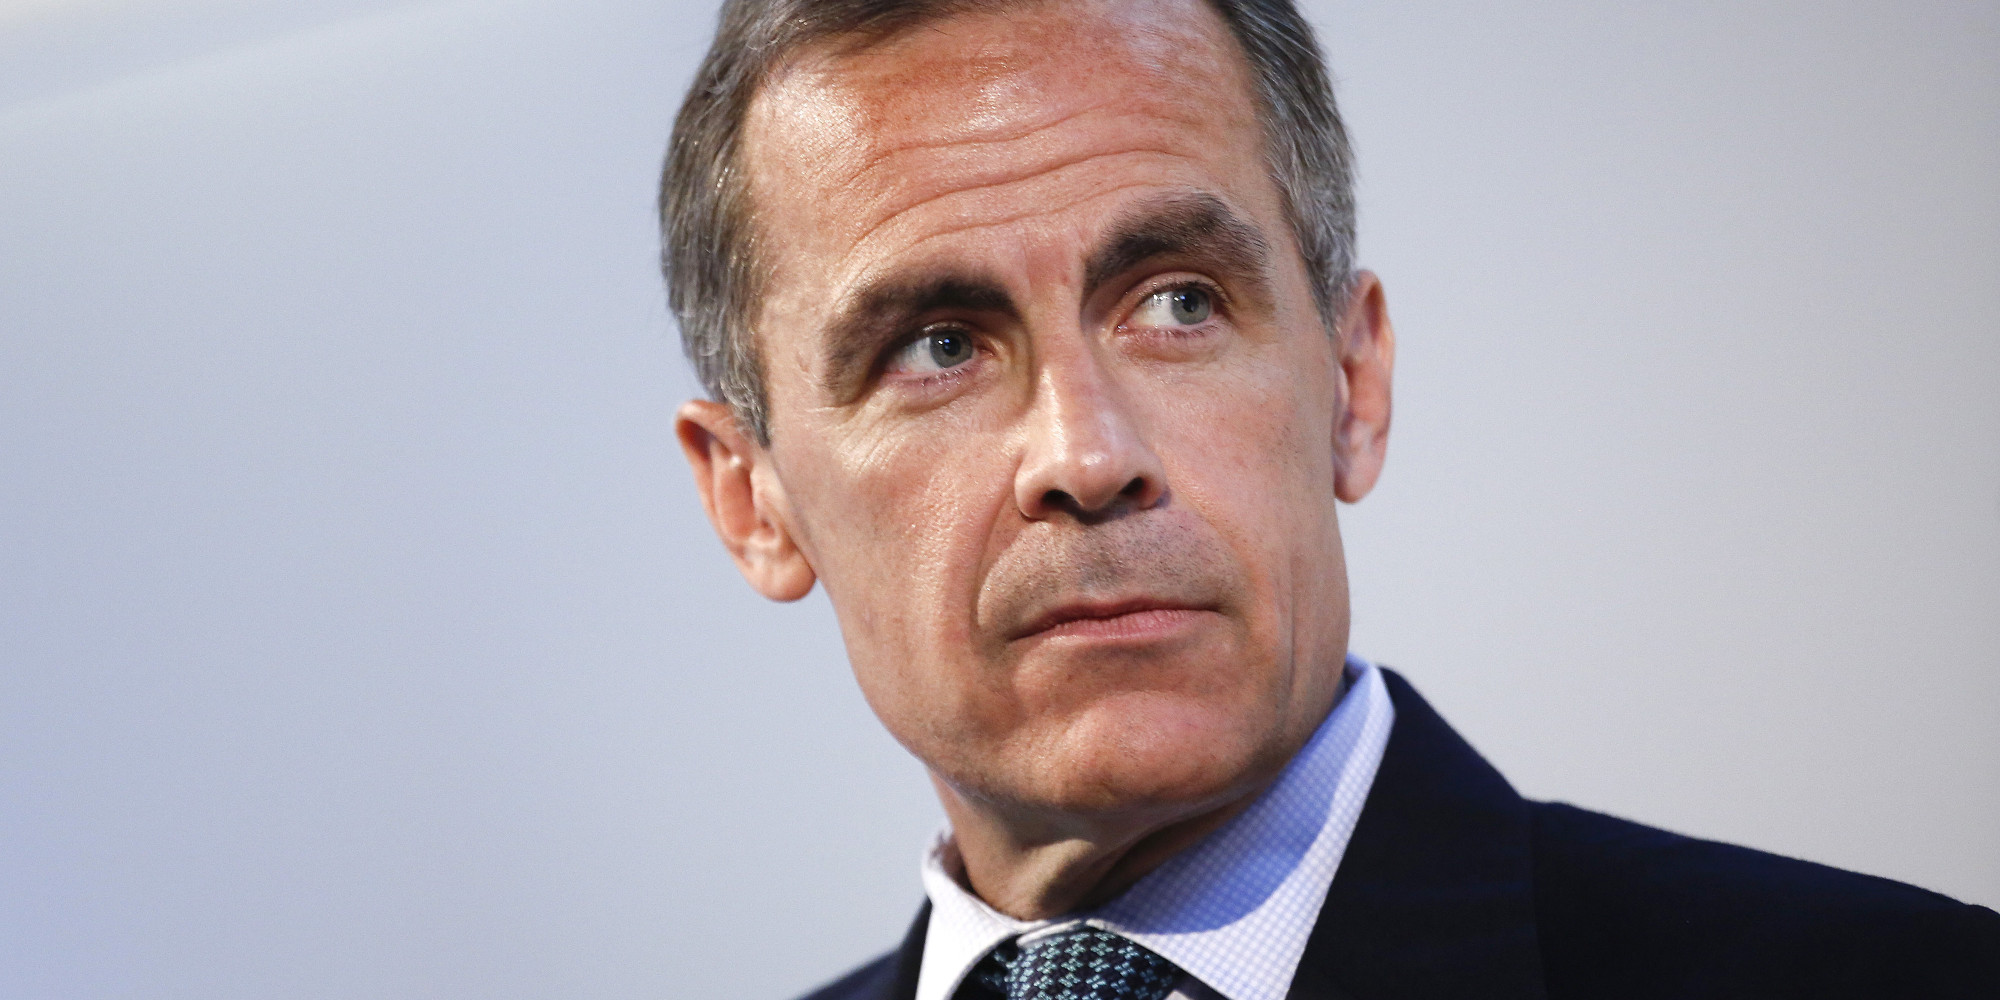 is the bank of england independent The bank of england has issued a fresh set of warnings about the economic implications of brexit, reiterating that the uk's split from the european union will probably hamper productivity and slow growth in its regular inflation report, published after announcing its first interest rate rise in over a decade, the.